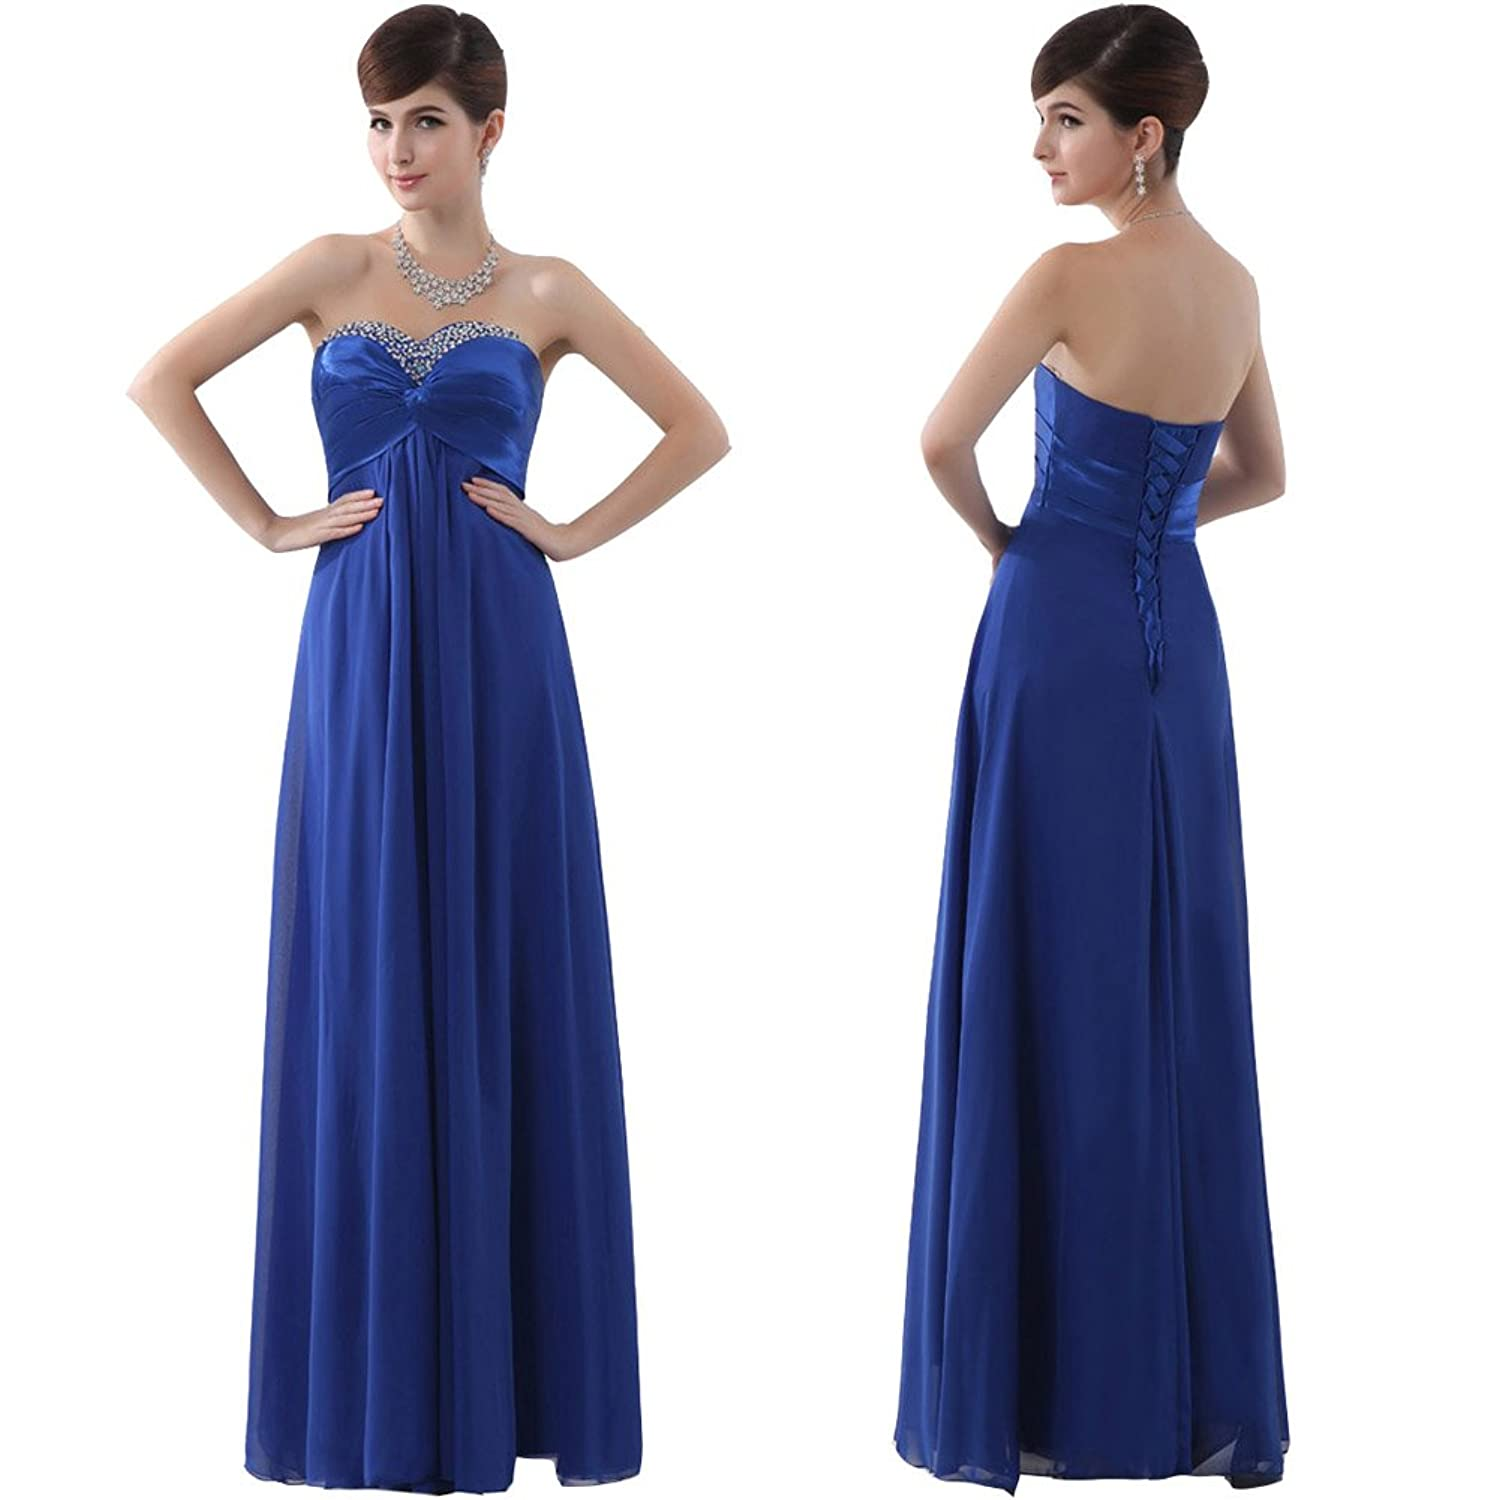 XinGe Women's Long A-line Chiffon Strapless Neck Pleated Evening Dress Prom Dress